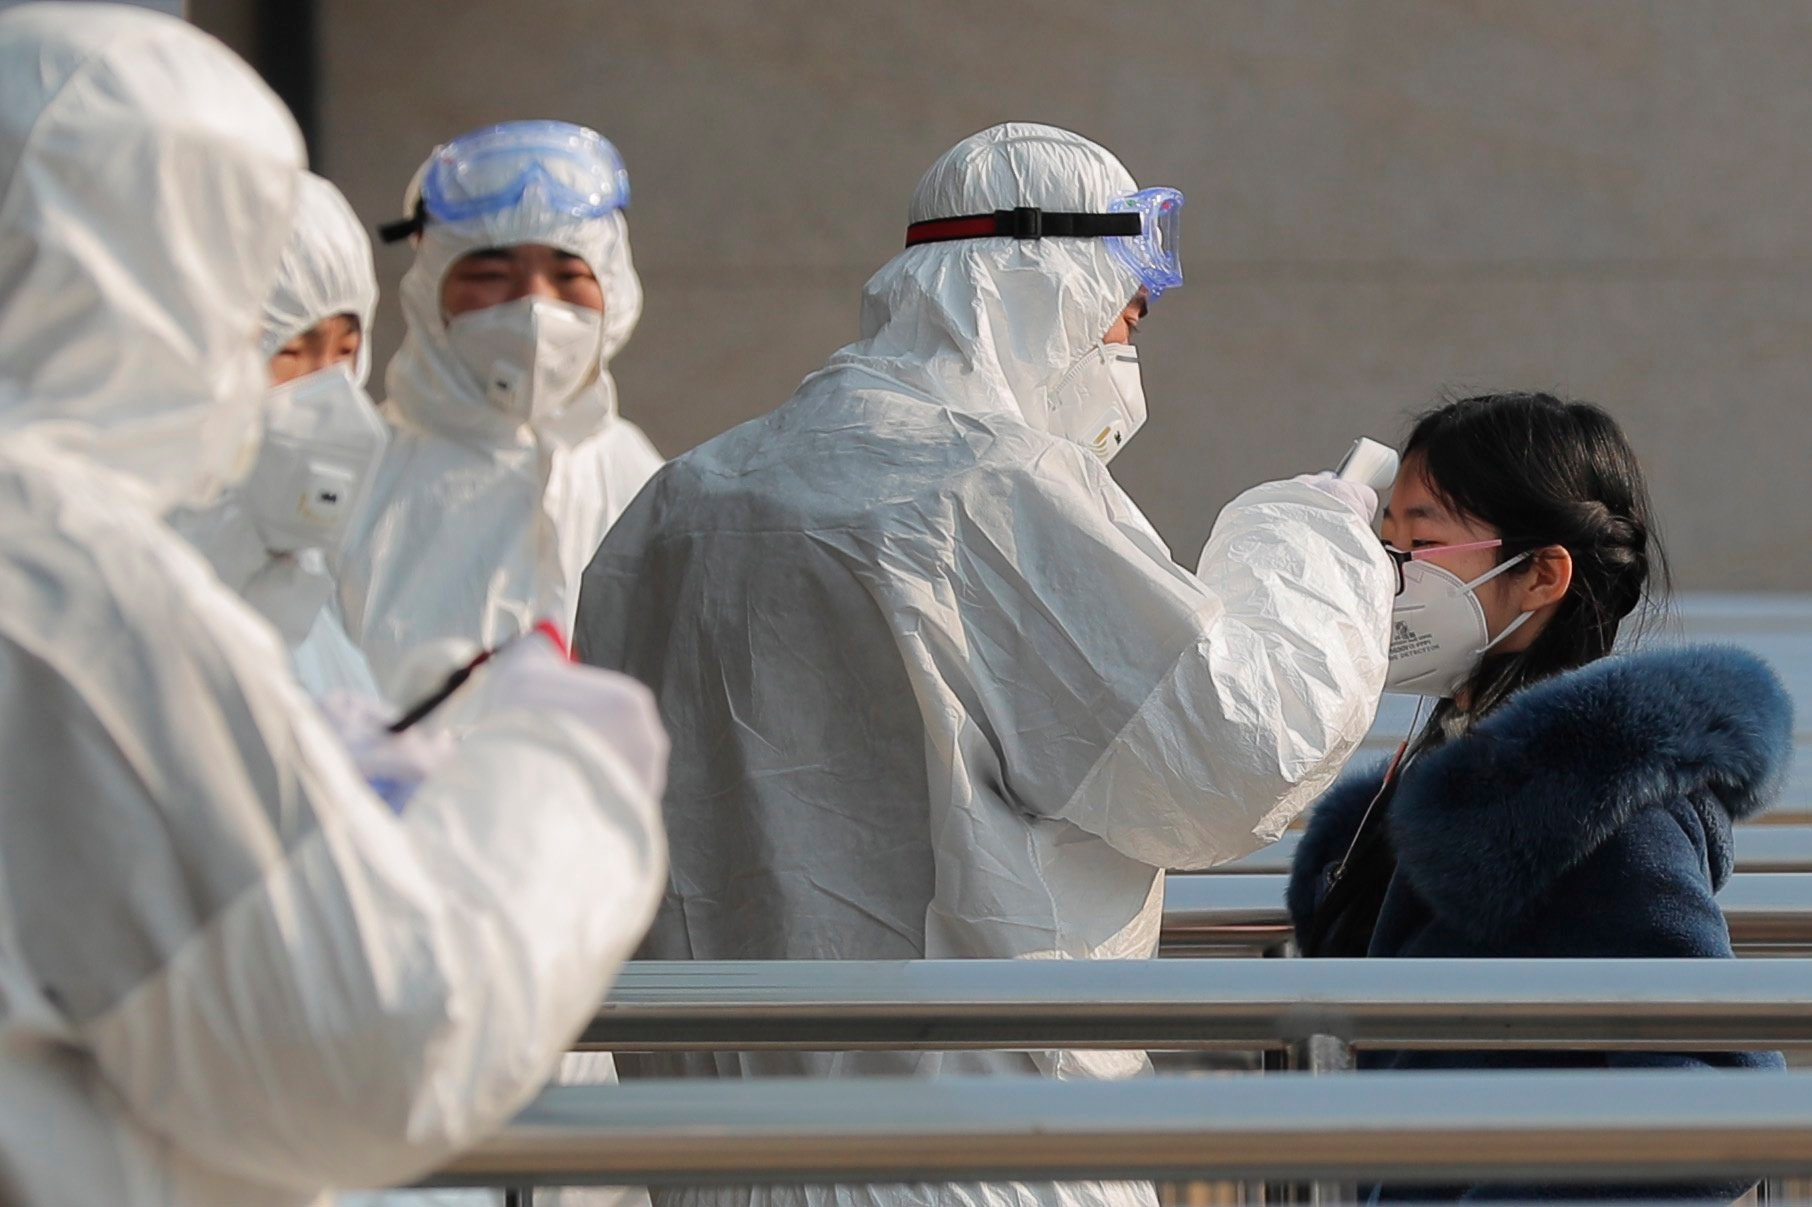 Mankind is fighting a deadly virus - Polish strategists still consider Russia the main threat